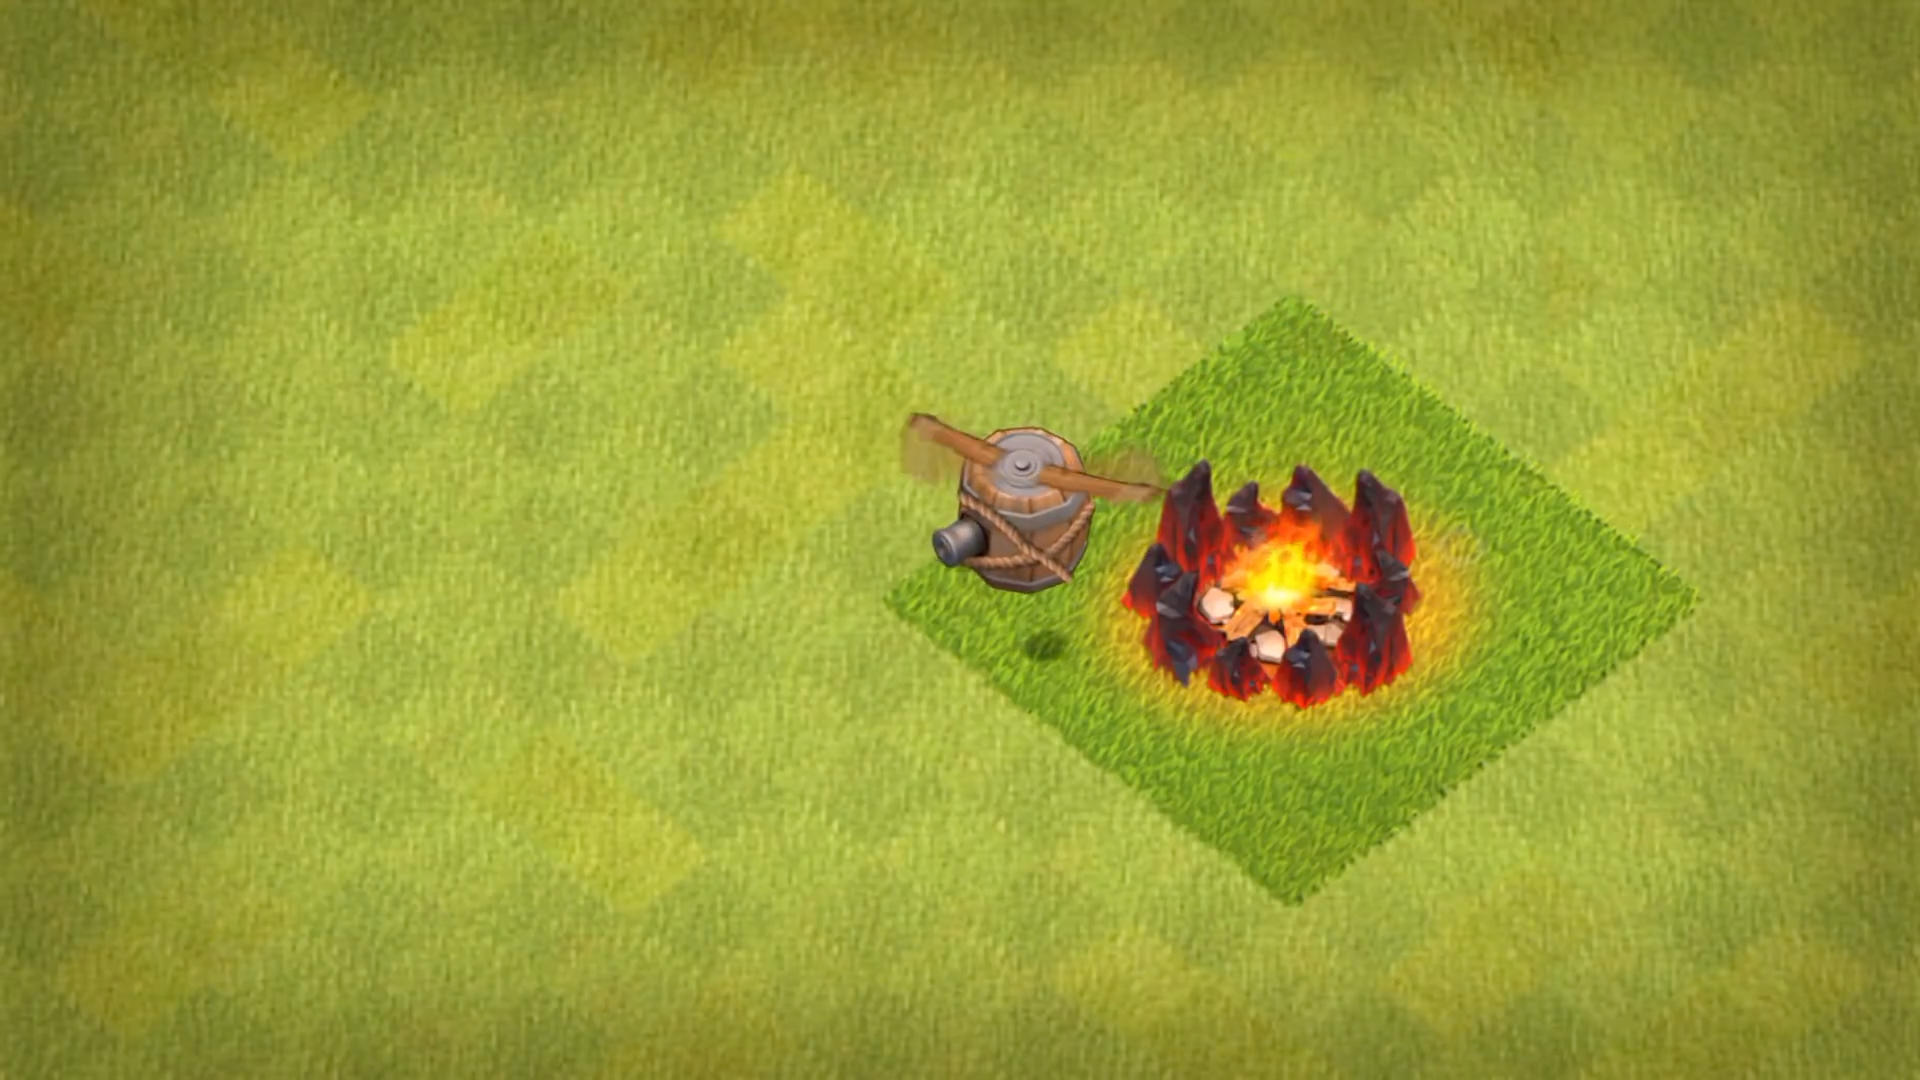 Летучка в Clash of Clans